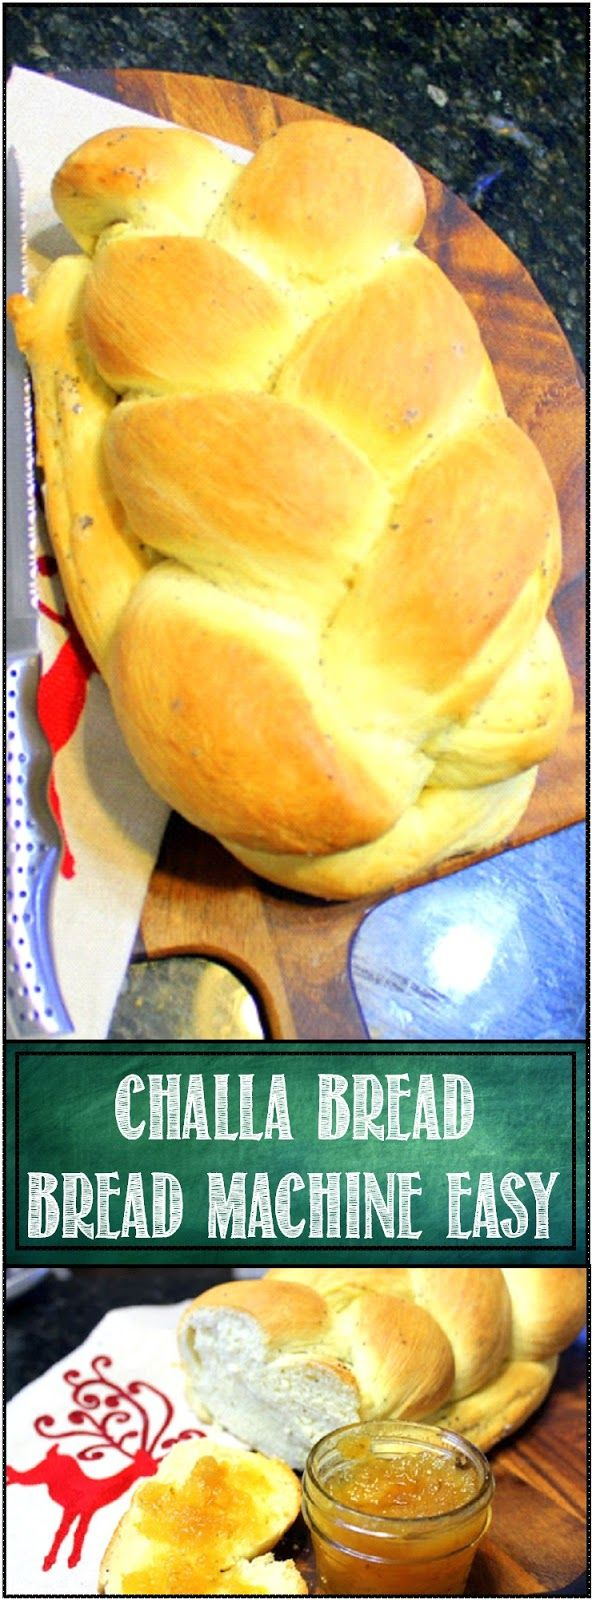 Challa Bread from a Bread Machine EASY DIY Fresh made bread - Yes Inddedy Do - This holiday show stopping presentation piece bread is indeed simple to make when a bread machine does all the mixing, kneading and first rise for this Holiday specialty. Just divide the dough, do a braid,and bake... HAPPY HOLIDAYS YEAR ROUND!